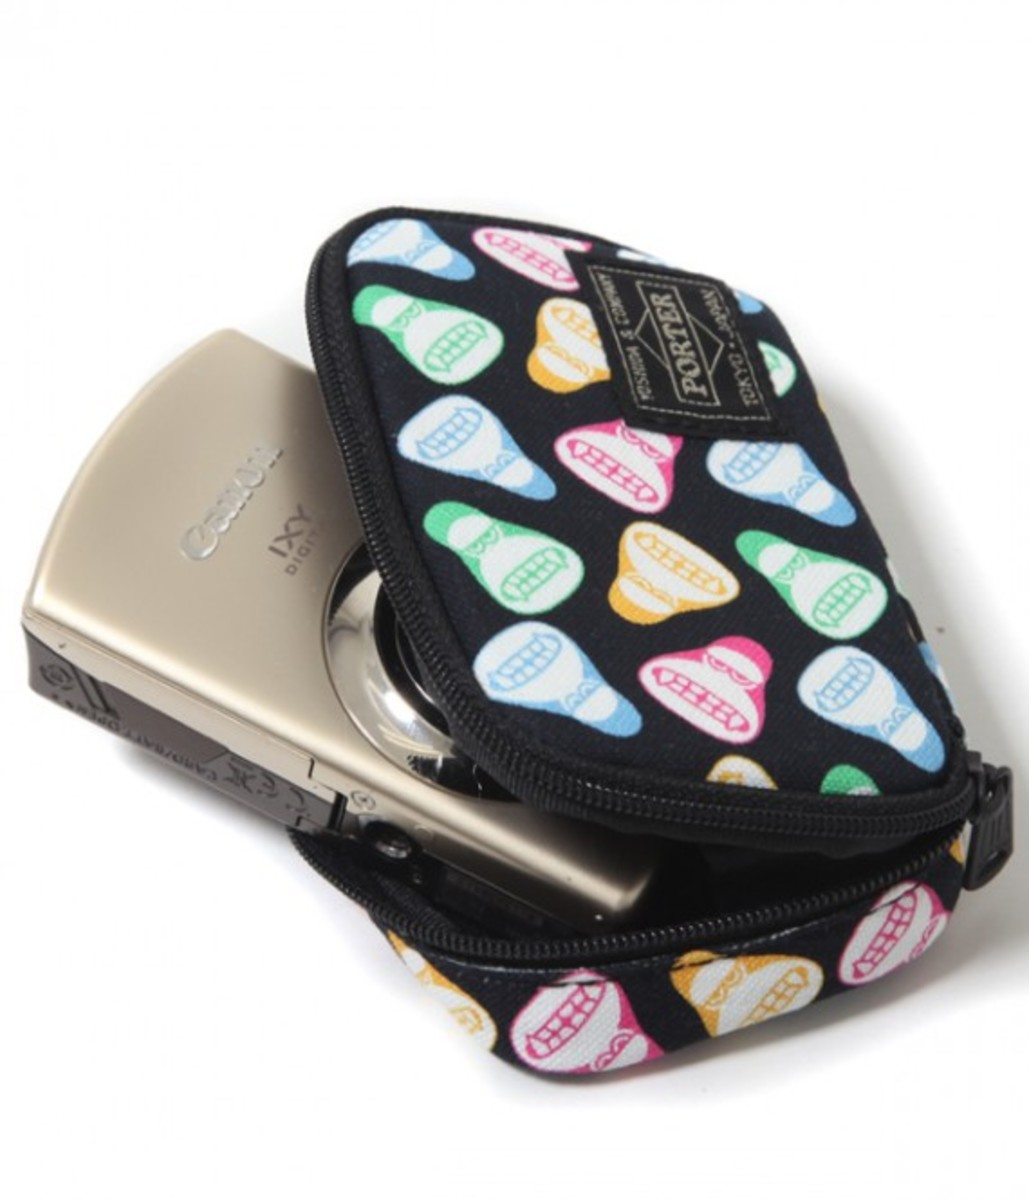 digital-camera-case-3